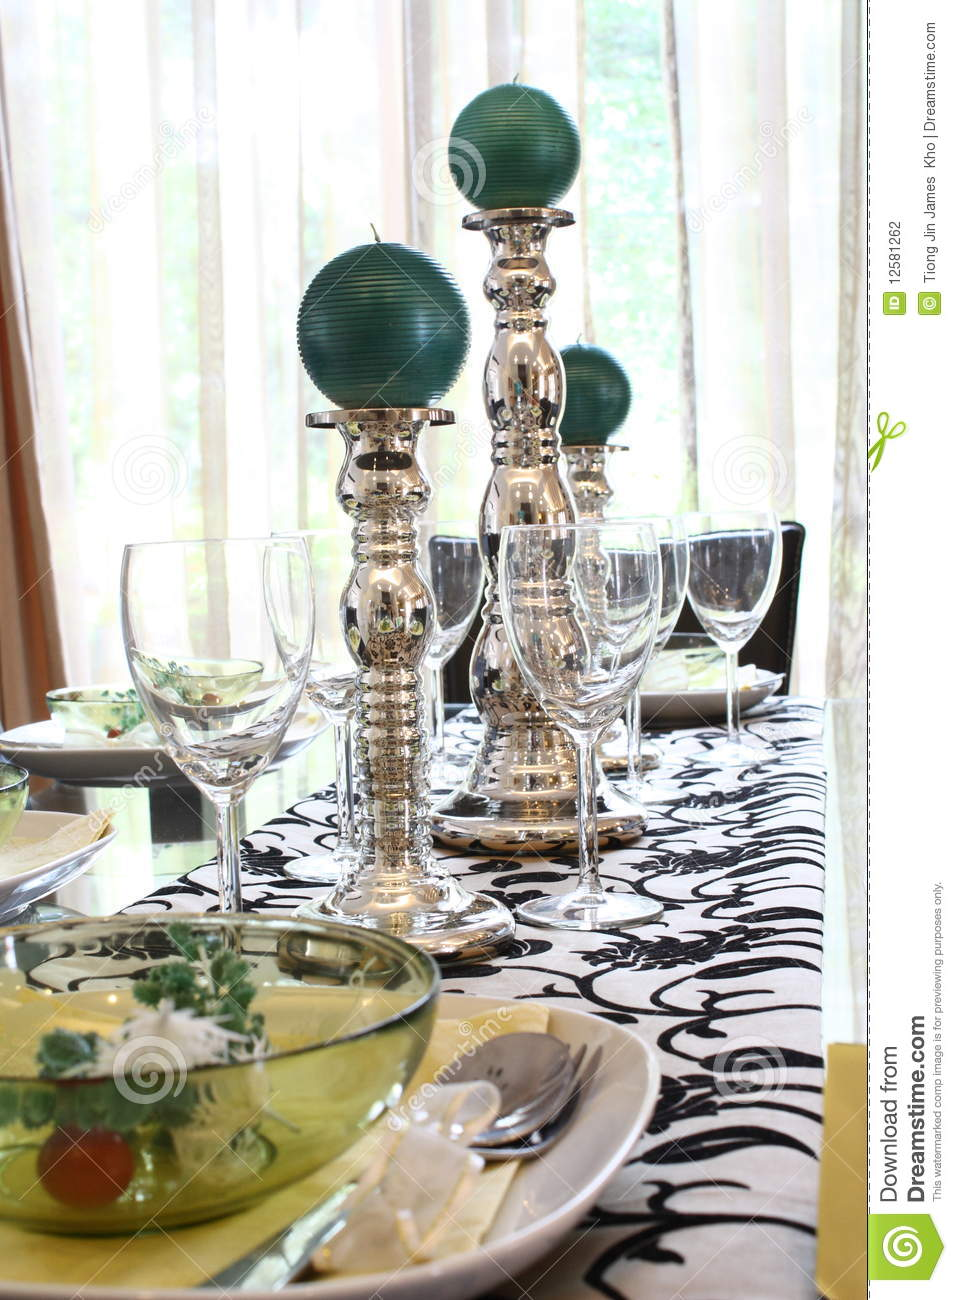 Dining Table Arrangement Stock Photo Image Of Tableware